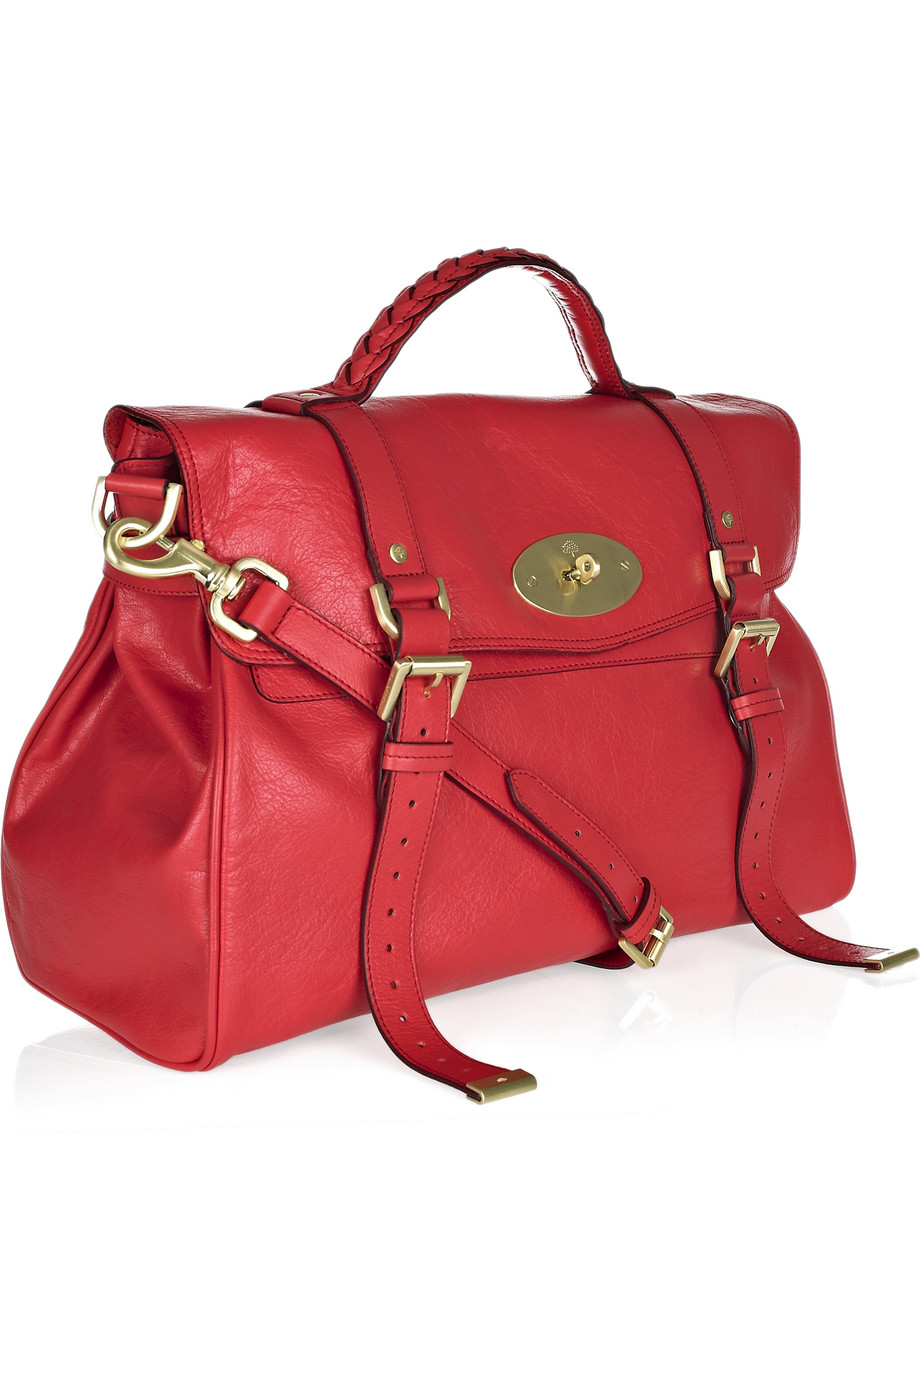 6aa94502c578 Mulberry Oversized Alexa Leather Bag in Red - Lyst